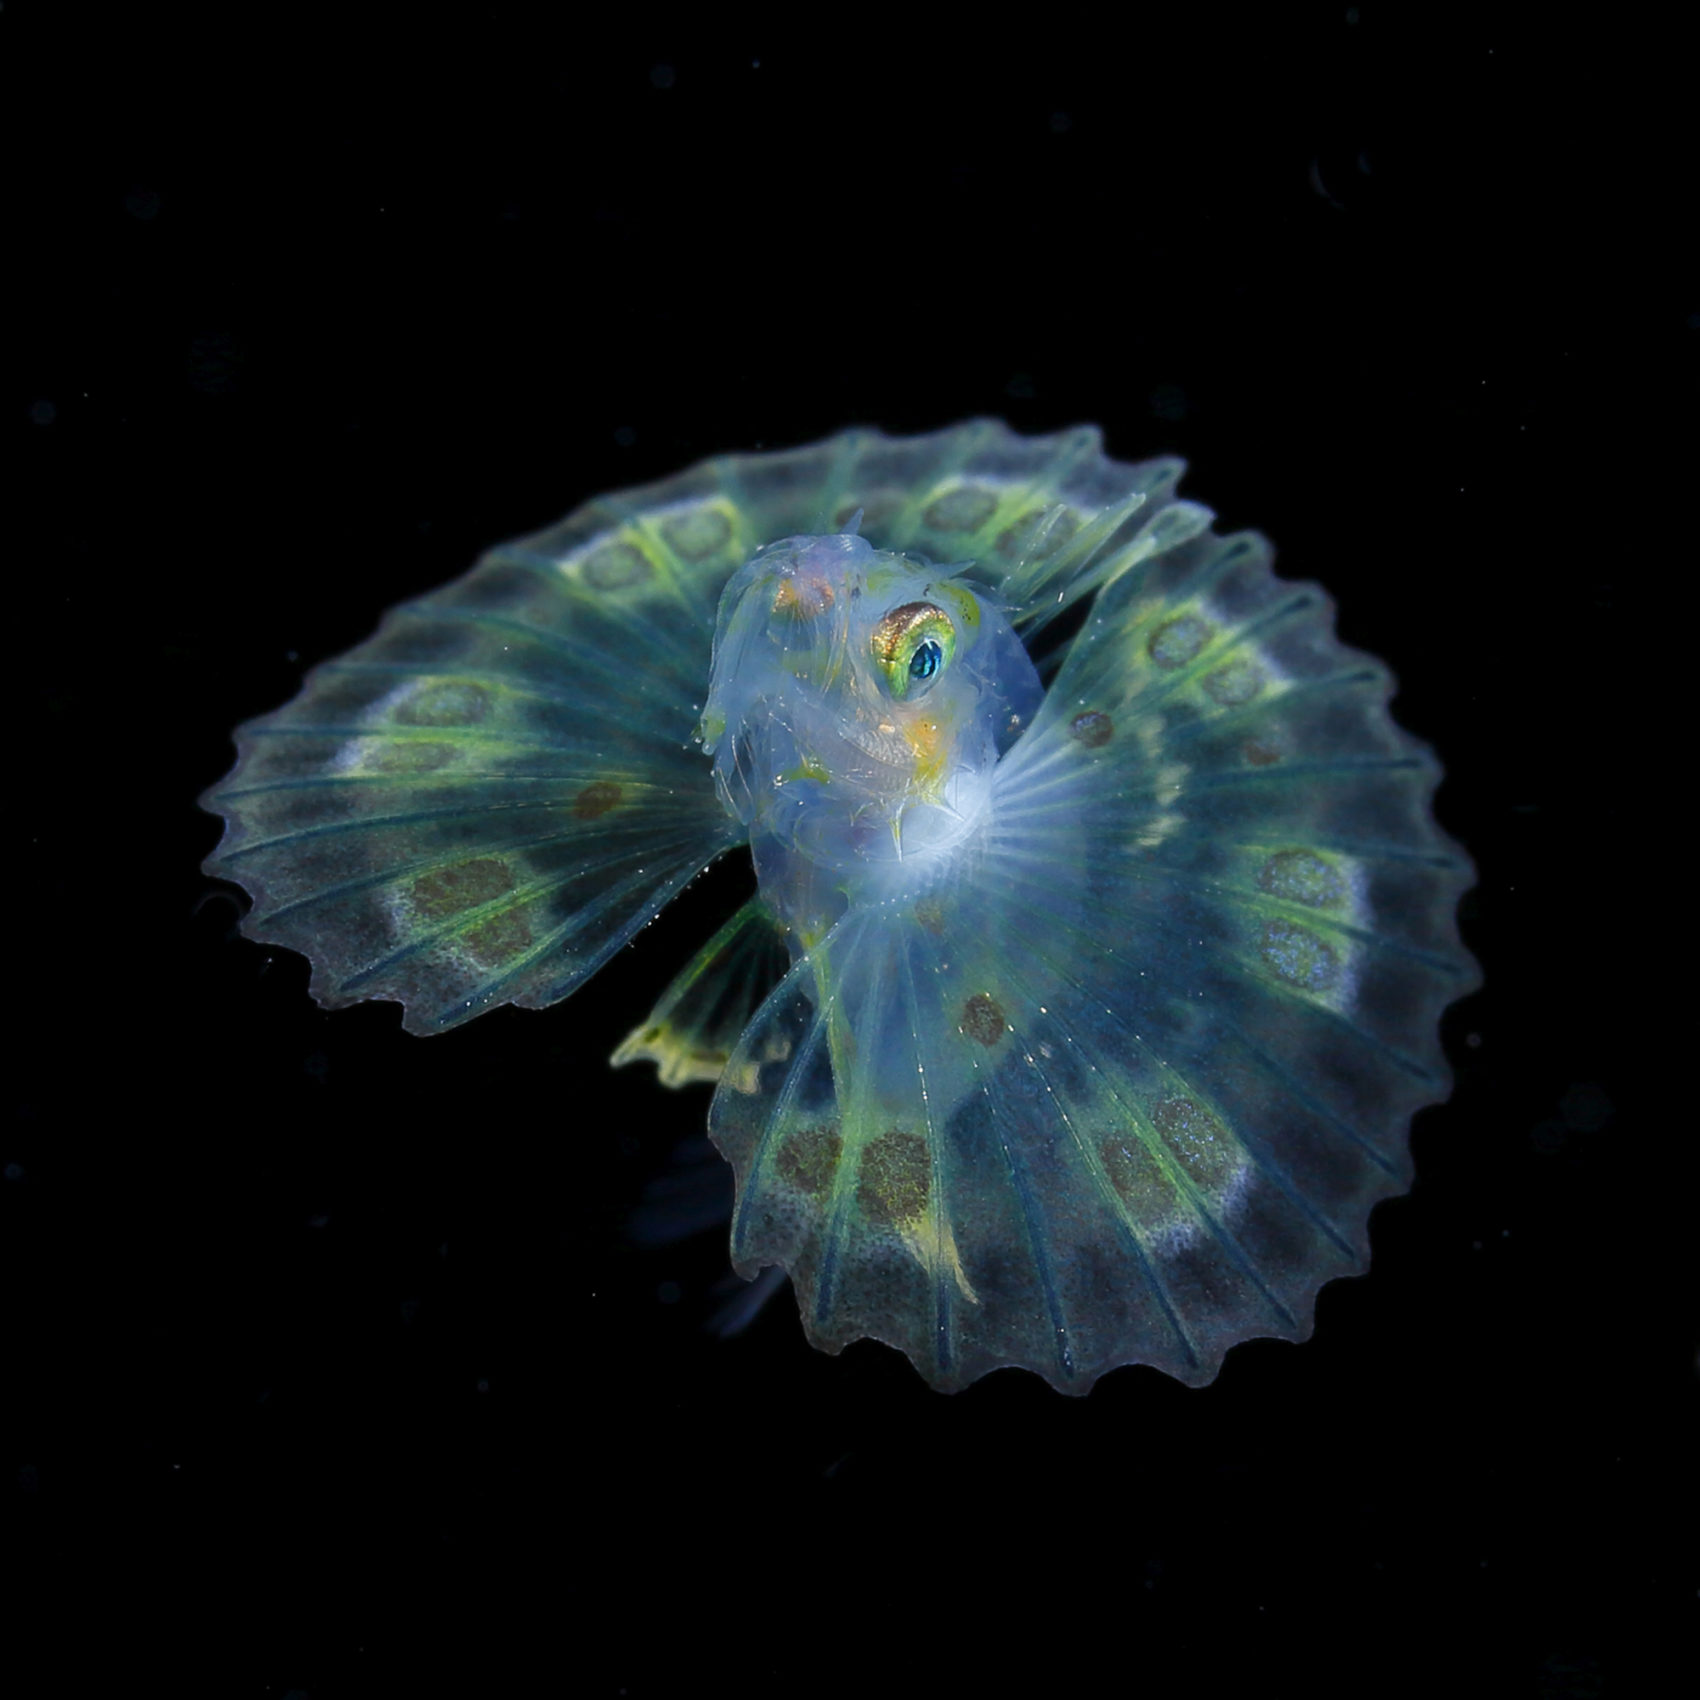 Jewels in the Night Sea RyoMinemizu Luminous Plankton Captured in the Dark Waters of the Osezaki Sea